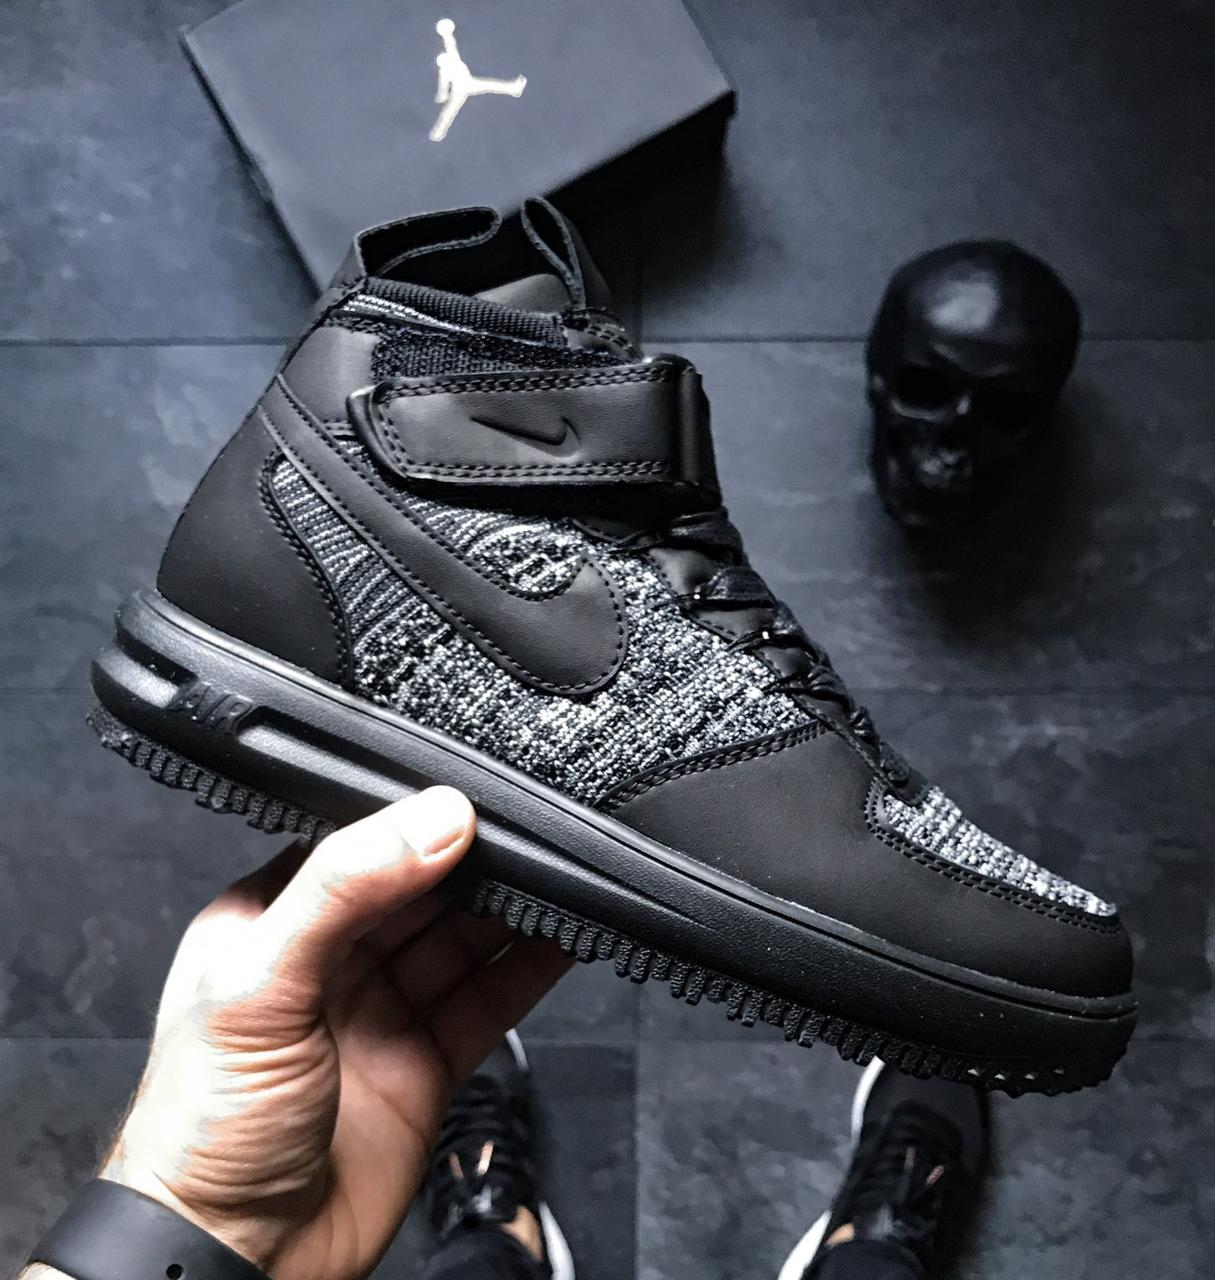 f1e3e0cf Мужские кроссовки Nike Lunar Force 1 Flyknit Workboot Black/Grey ...